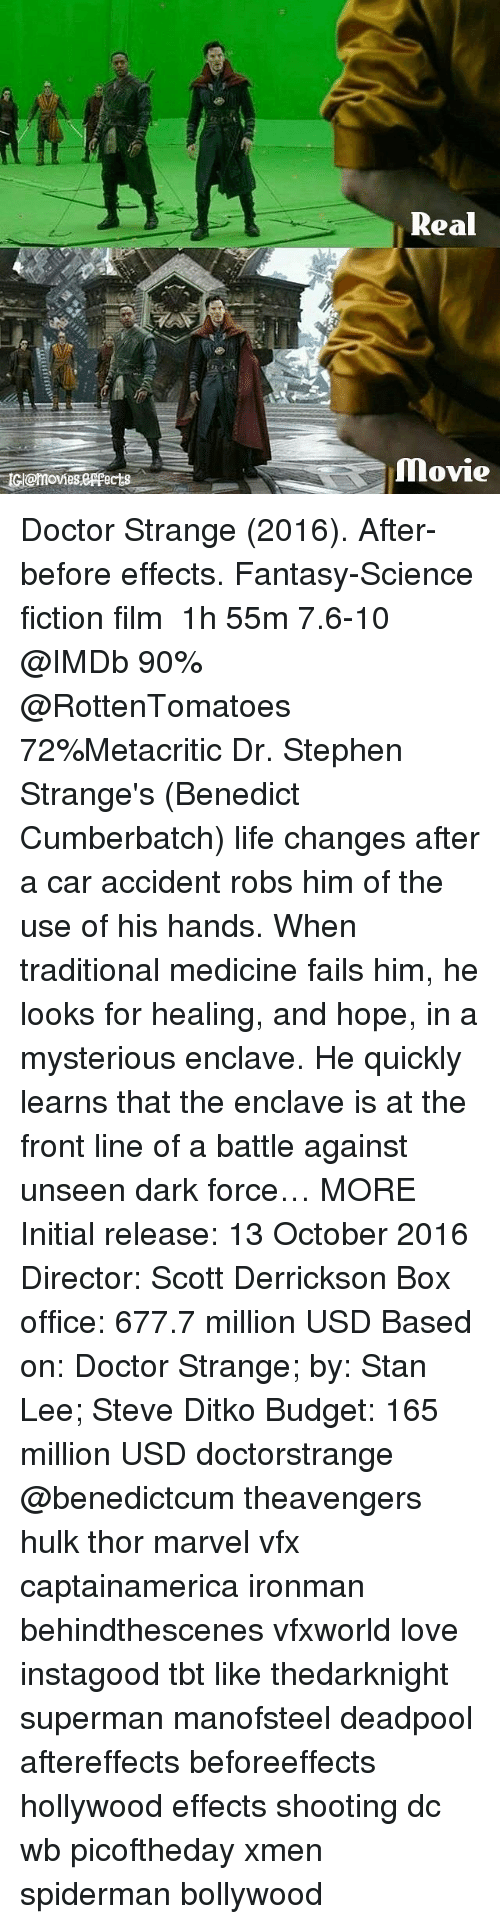 Doctor, Life, and Love: Real  tl@moviesespects Doctor Strange (2016). After-before effects. Fantasy-Science fiction film ‧ 1h 55m 7.6-10 @IMDb 90% @RottenTomatoes 72%Metacritic Dr. Stephen Strange's (Benedict Cumberbatch) life changes after a car accident robs him of the use of his hands. When traditional medicine fails him, he looks for healing, and hope, in a mysterious enclave. He quickly learns that the enclave is at the front line of a battle against unseen dark force… MORE Initial release: 13 October 2016 Director: Scott Derrickson Box office: 677.7 million USD Based on: Doctor Strange; by: Stan Lee; Steve Ditko Budget: 165 million USD doctorstrange @benedictcum theavengers hulk thor marvel vfx captainamerica ironman behindthescenes vfxworld love instagood tbt like thedarknight superman manofsteel deadpool aftereffects beforeeffects hollywood effects shooting dc wb picoftheday xmen spiderman bollywood